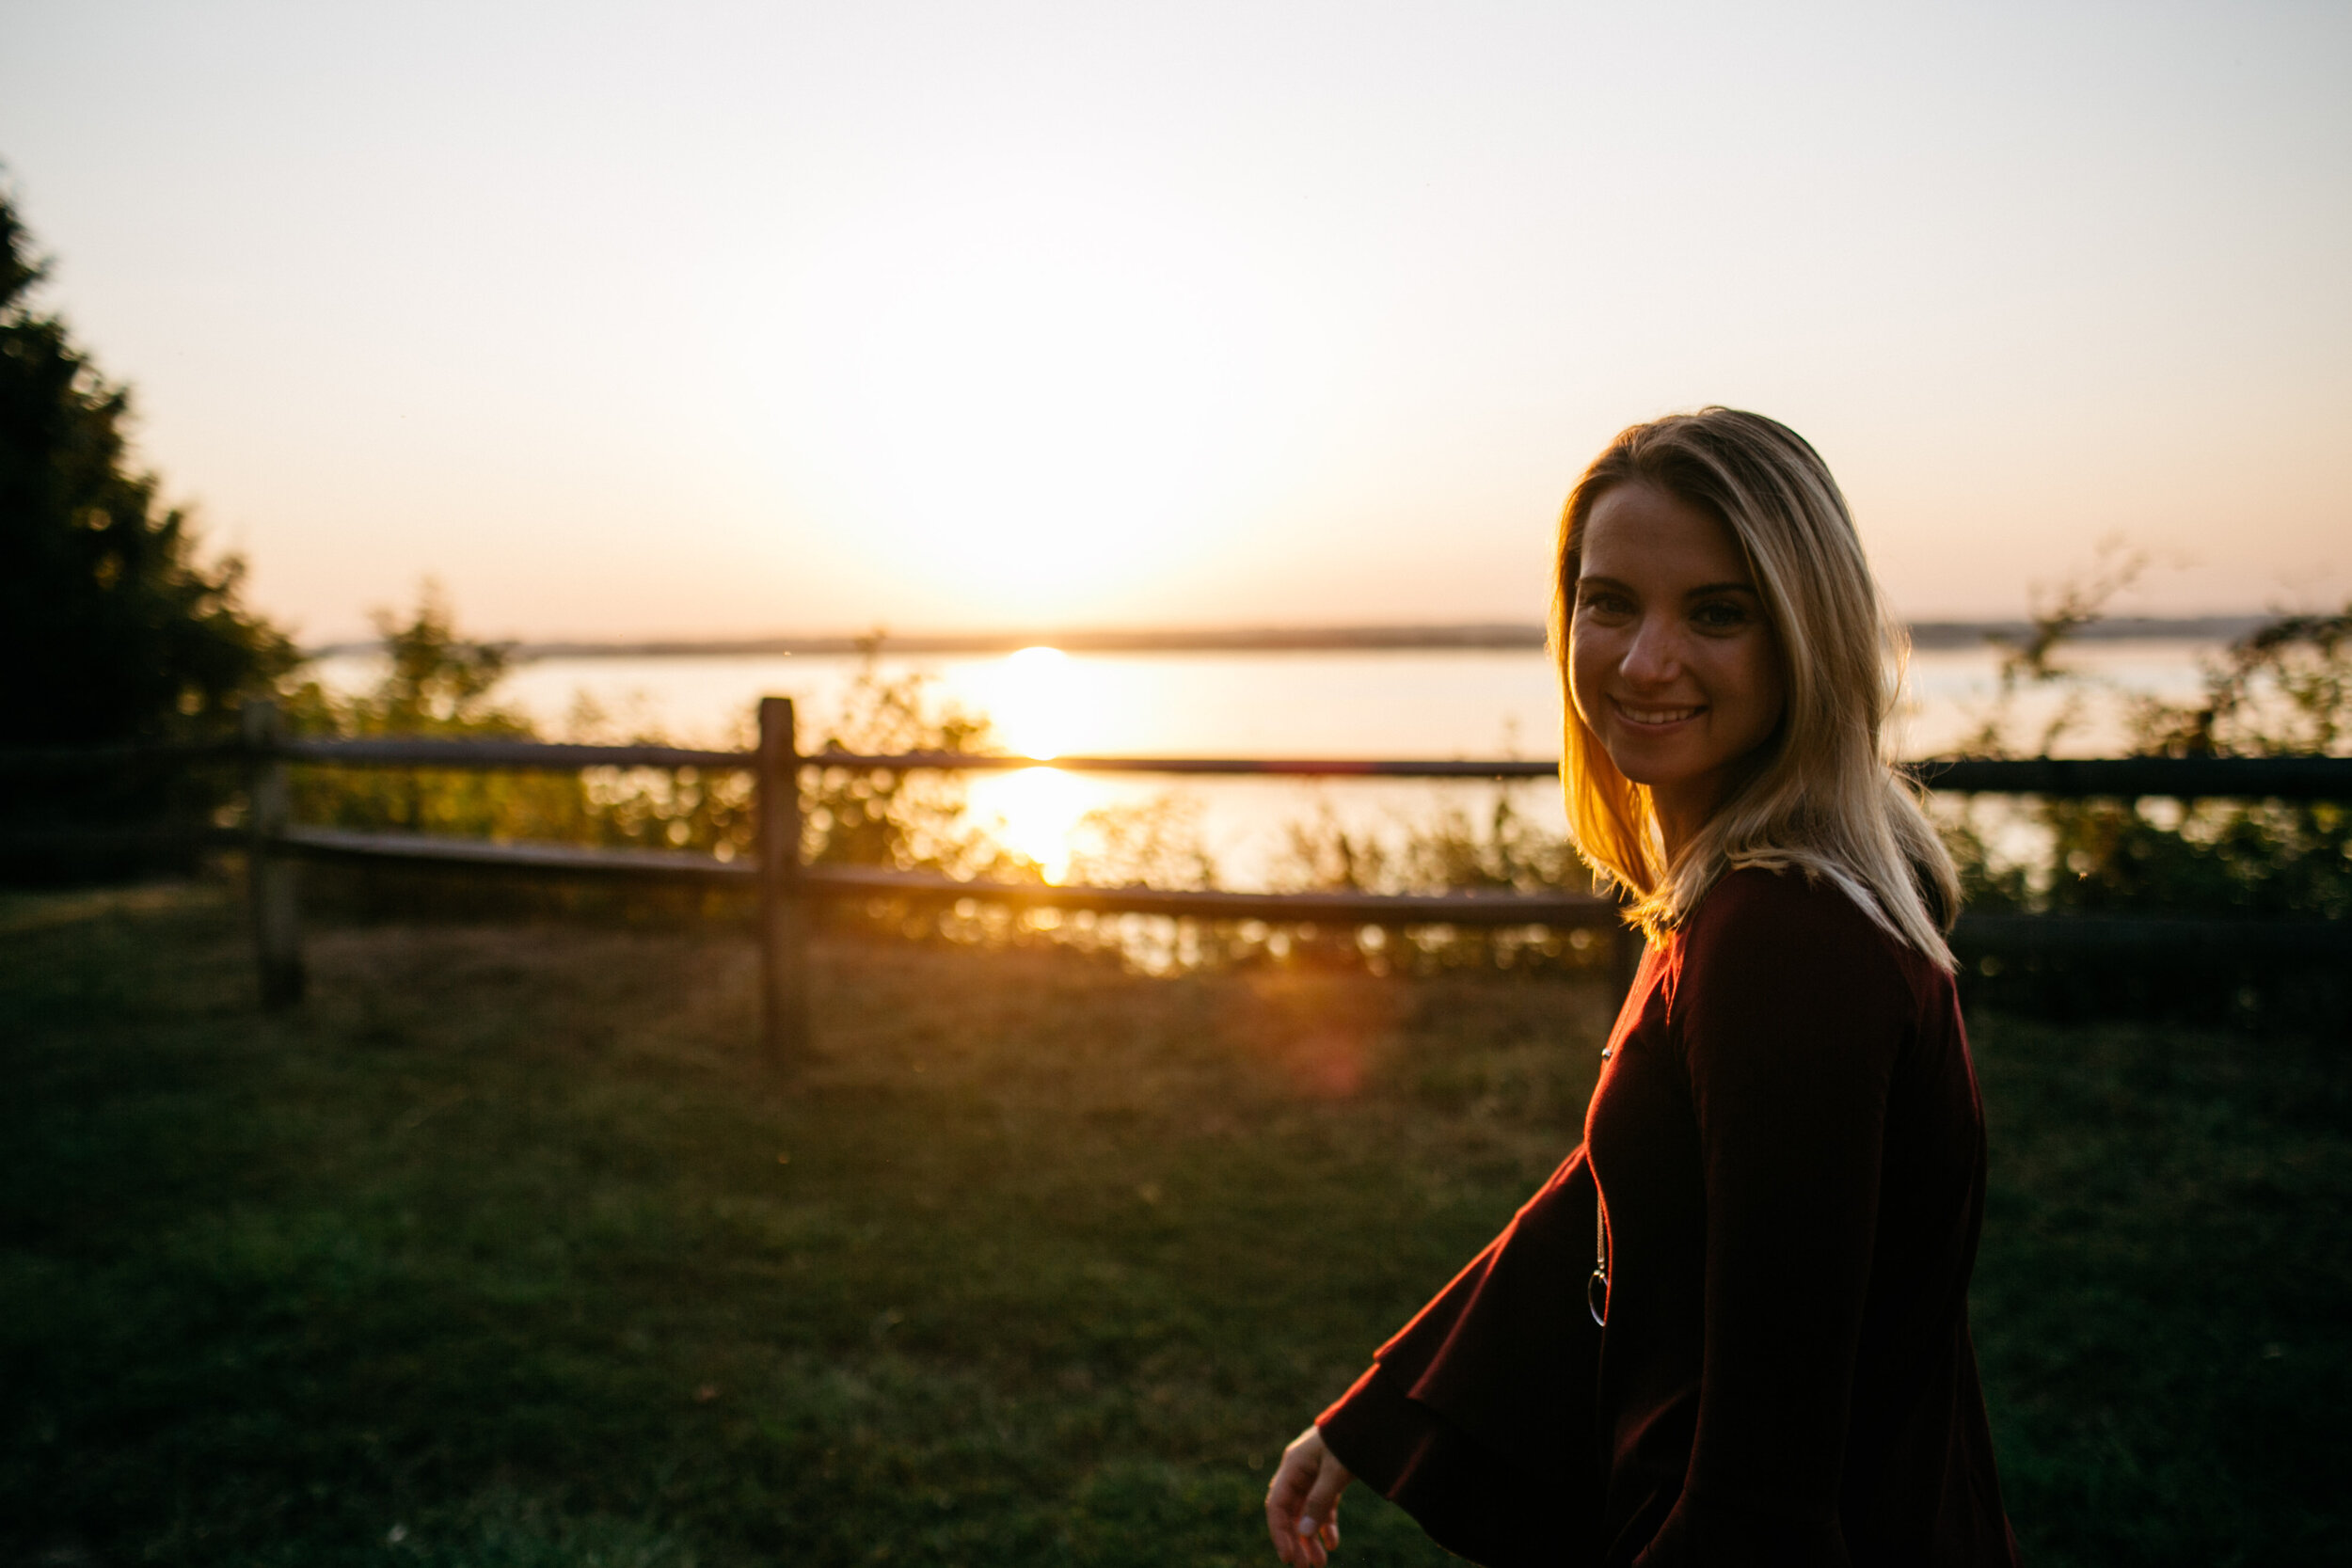 sasha_garth_engagement_mason_neck_state_park_summer_sunset_green_Forest-13.jpg